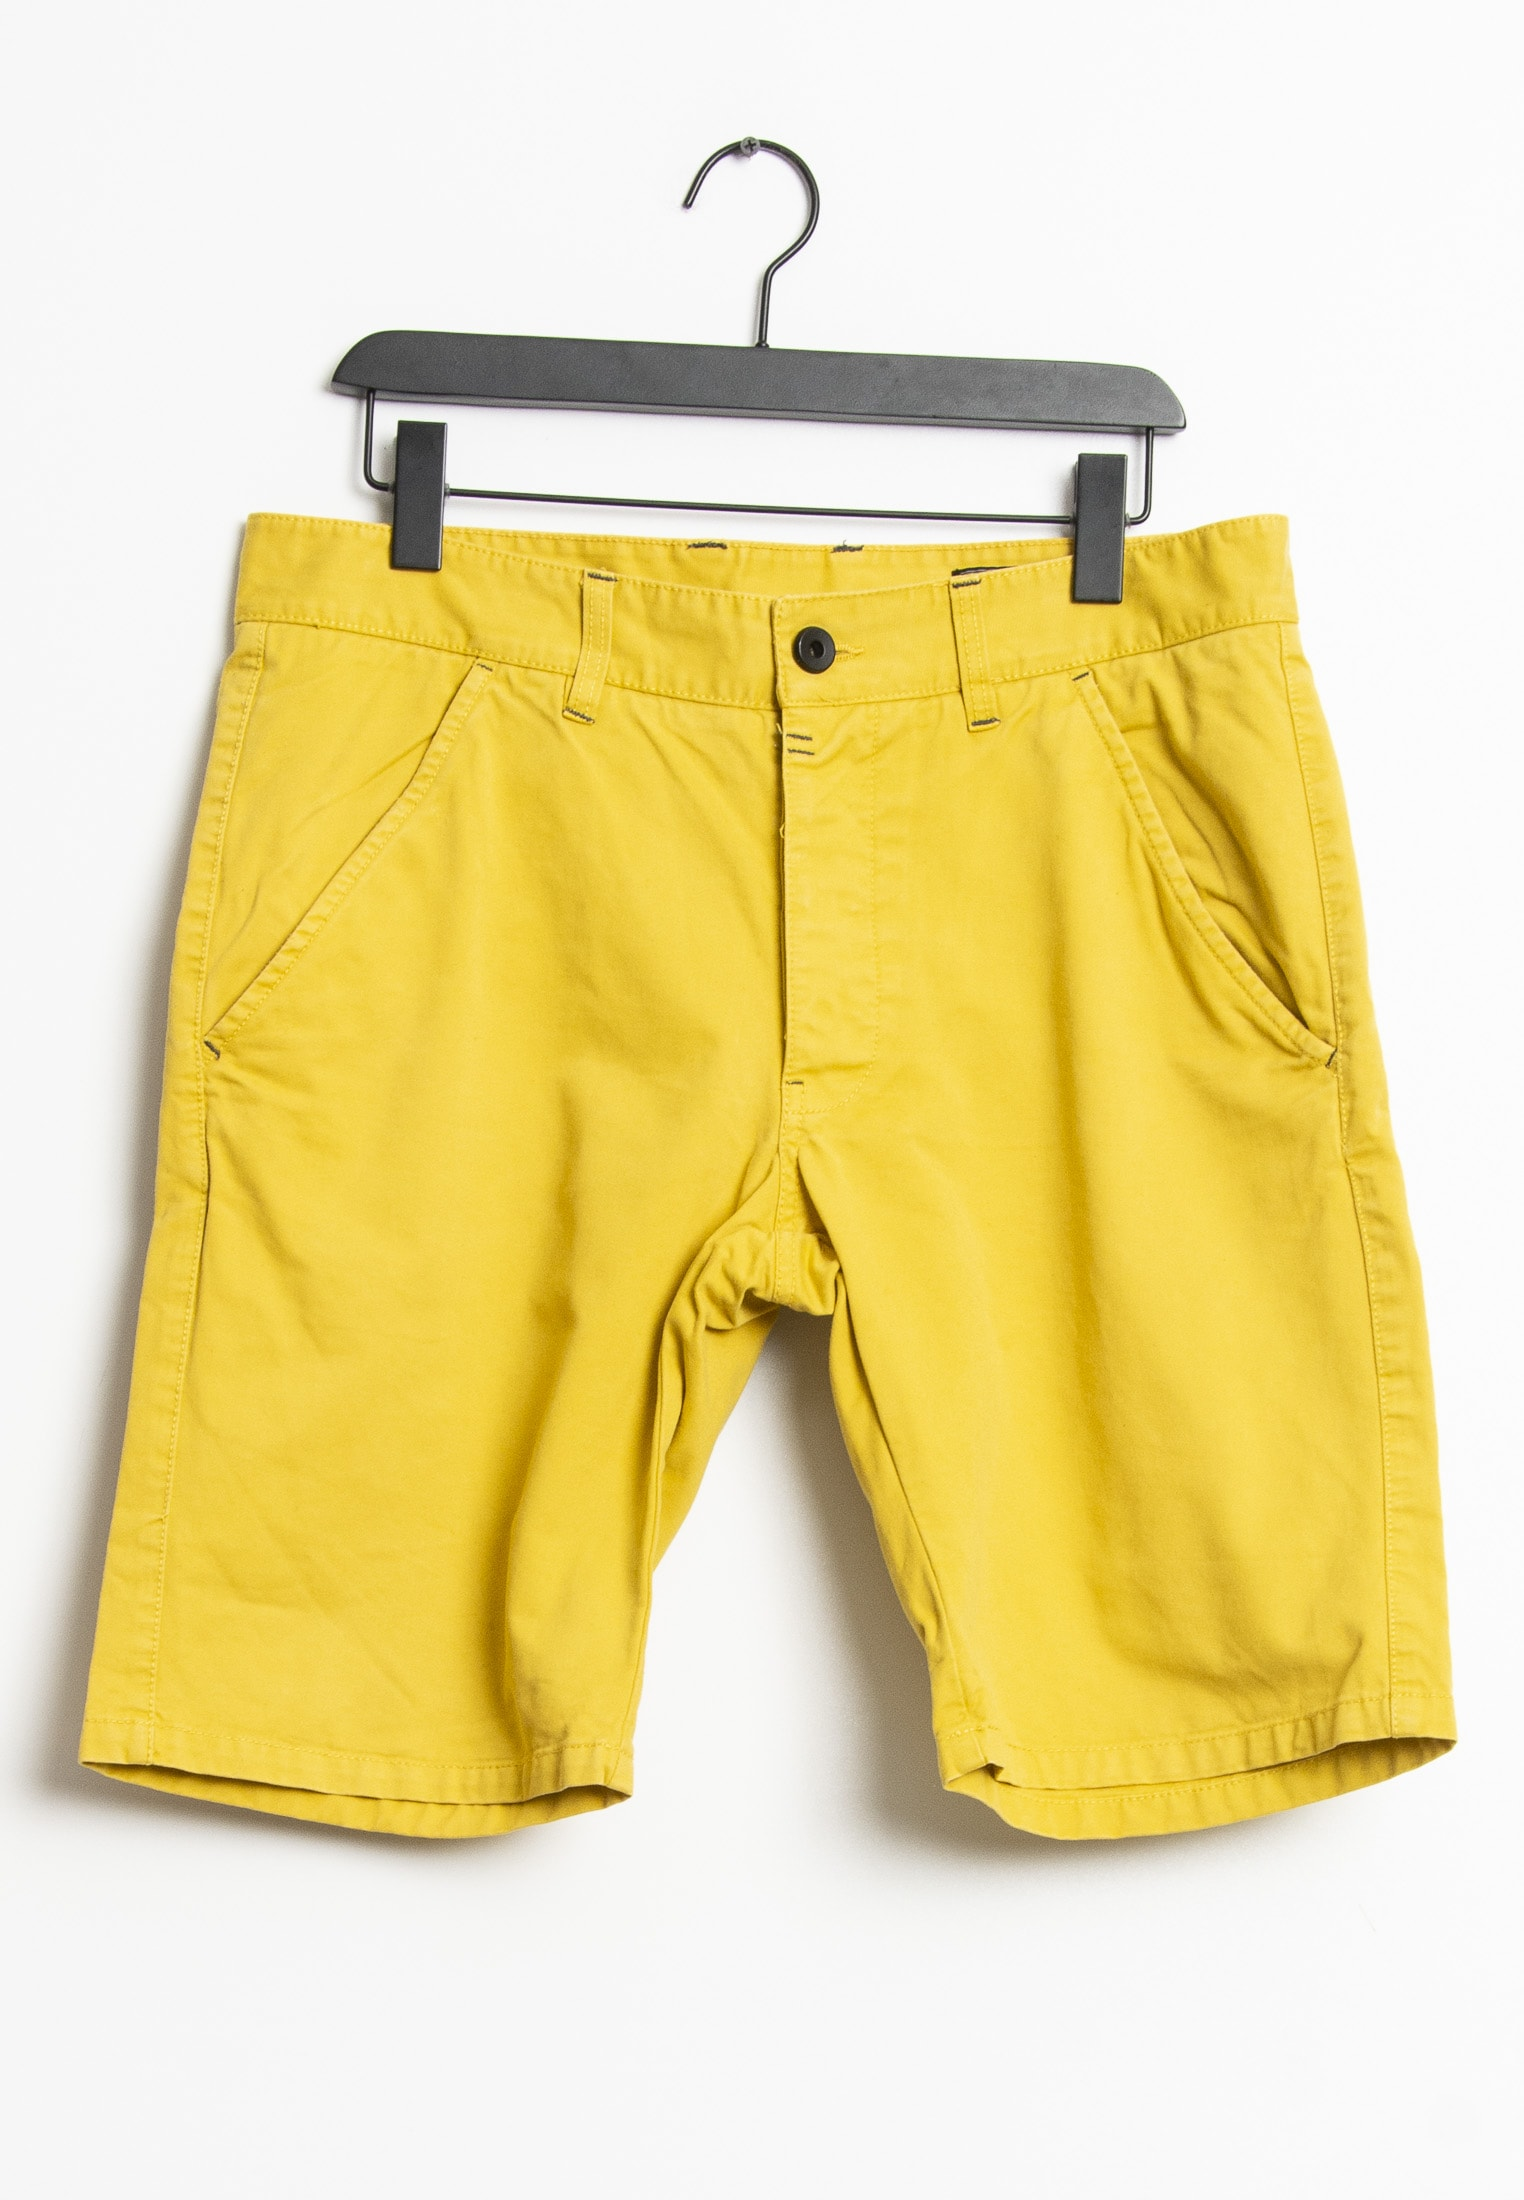 Jack & Jones Shorts Gelb Gr.L